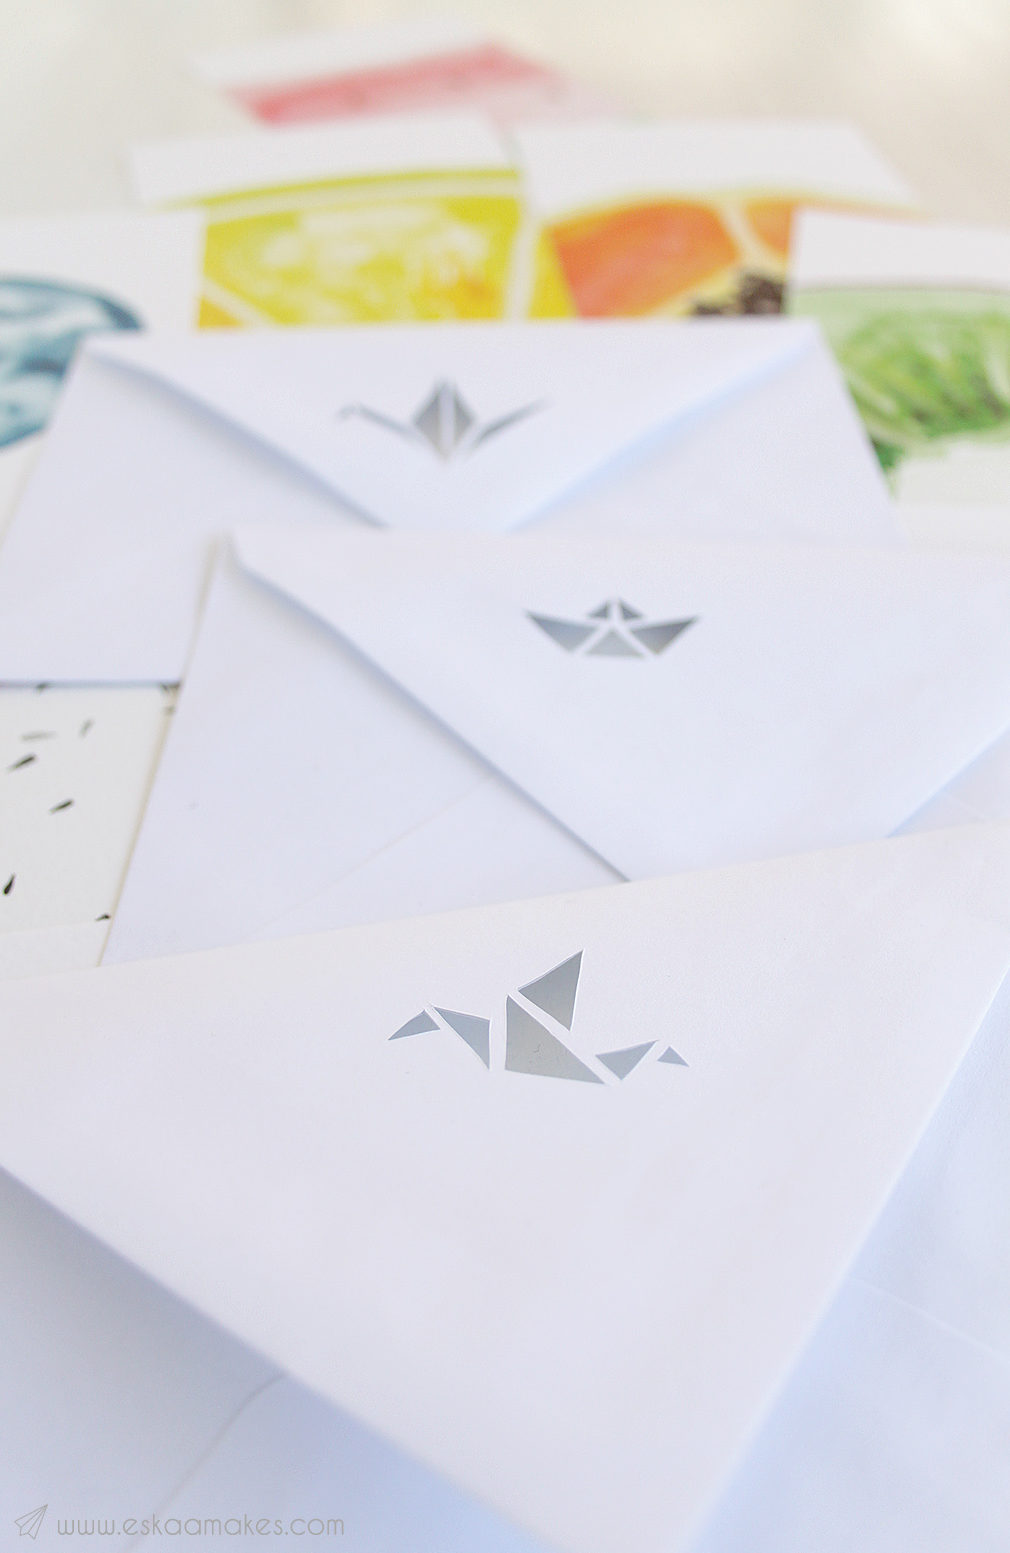 envelopes-diy-origami-stencil-5